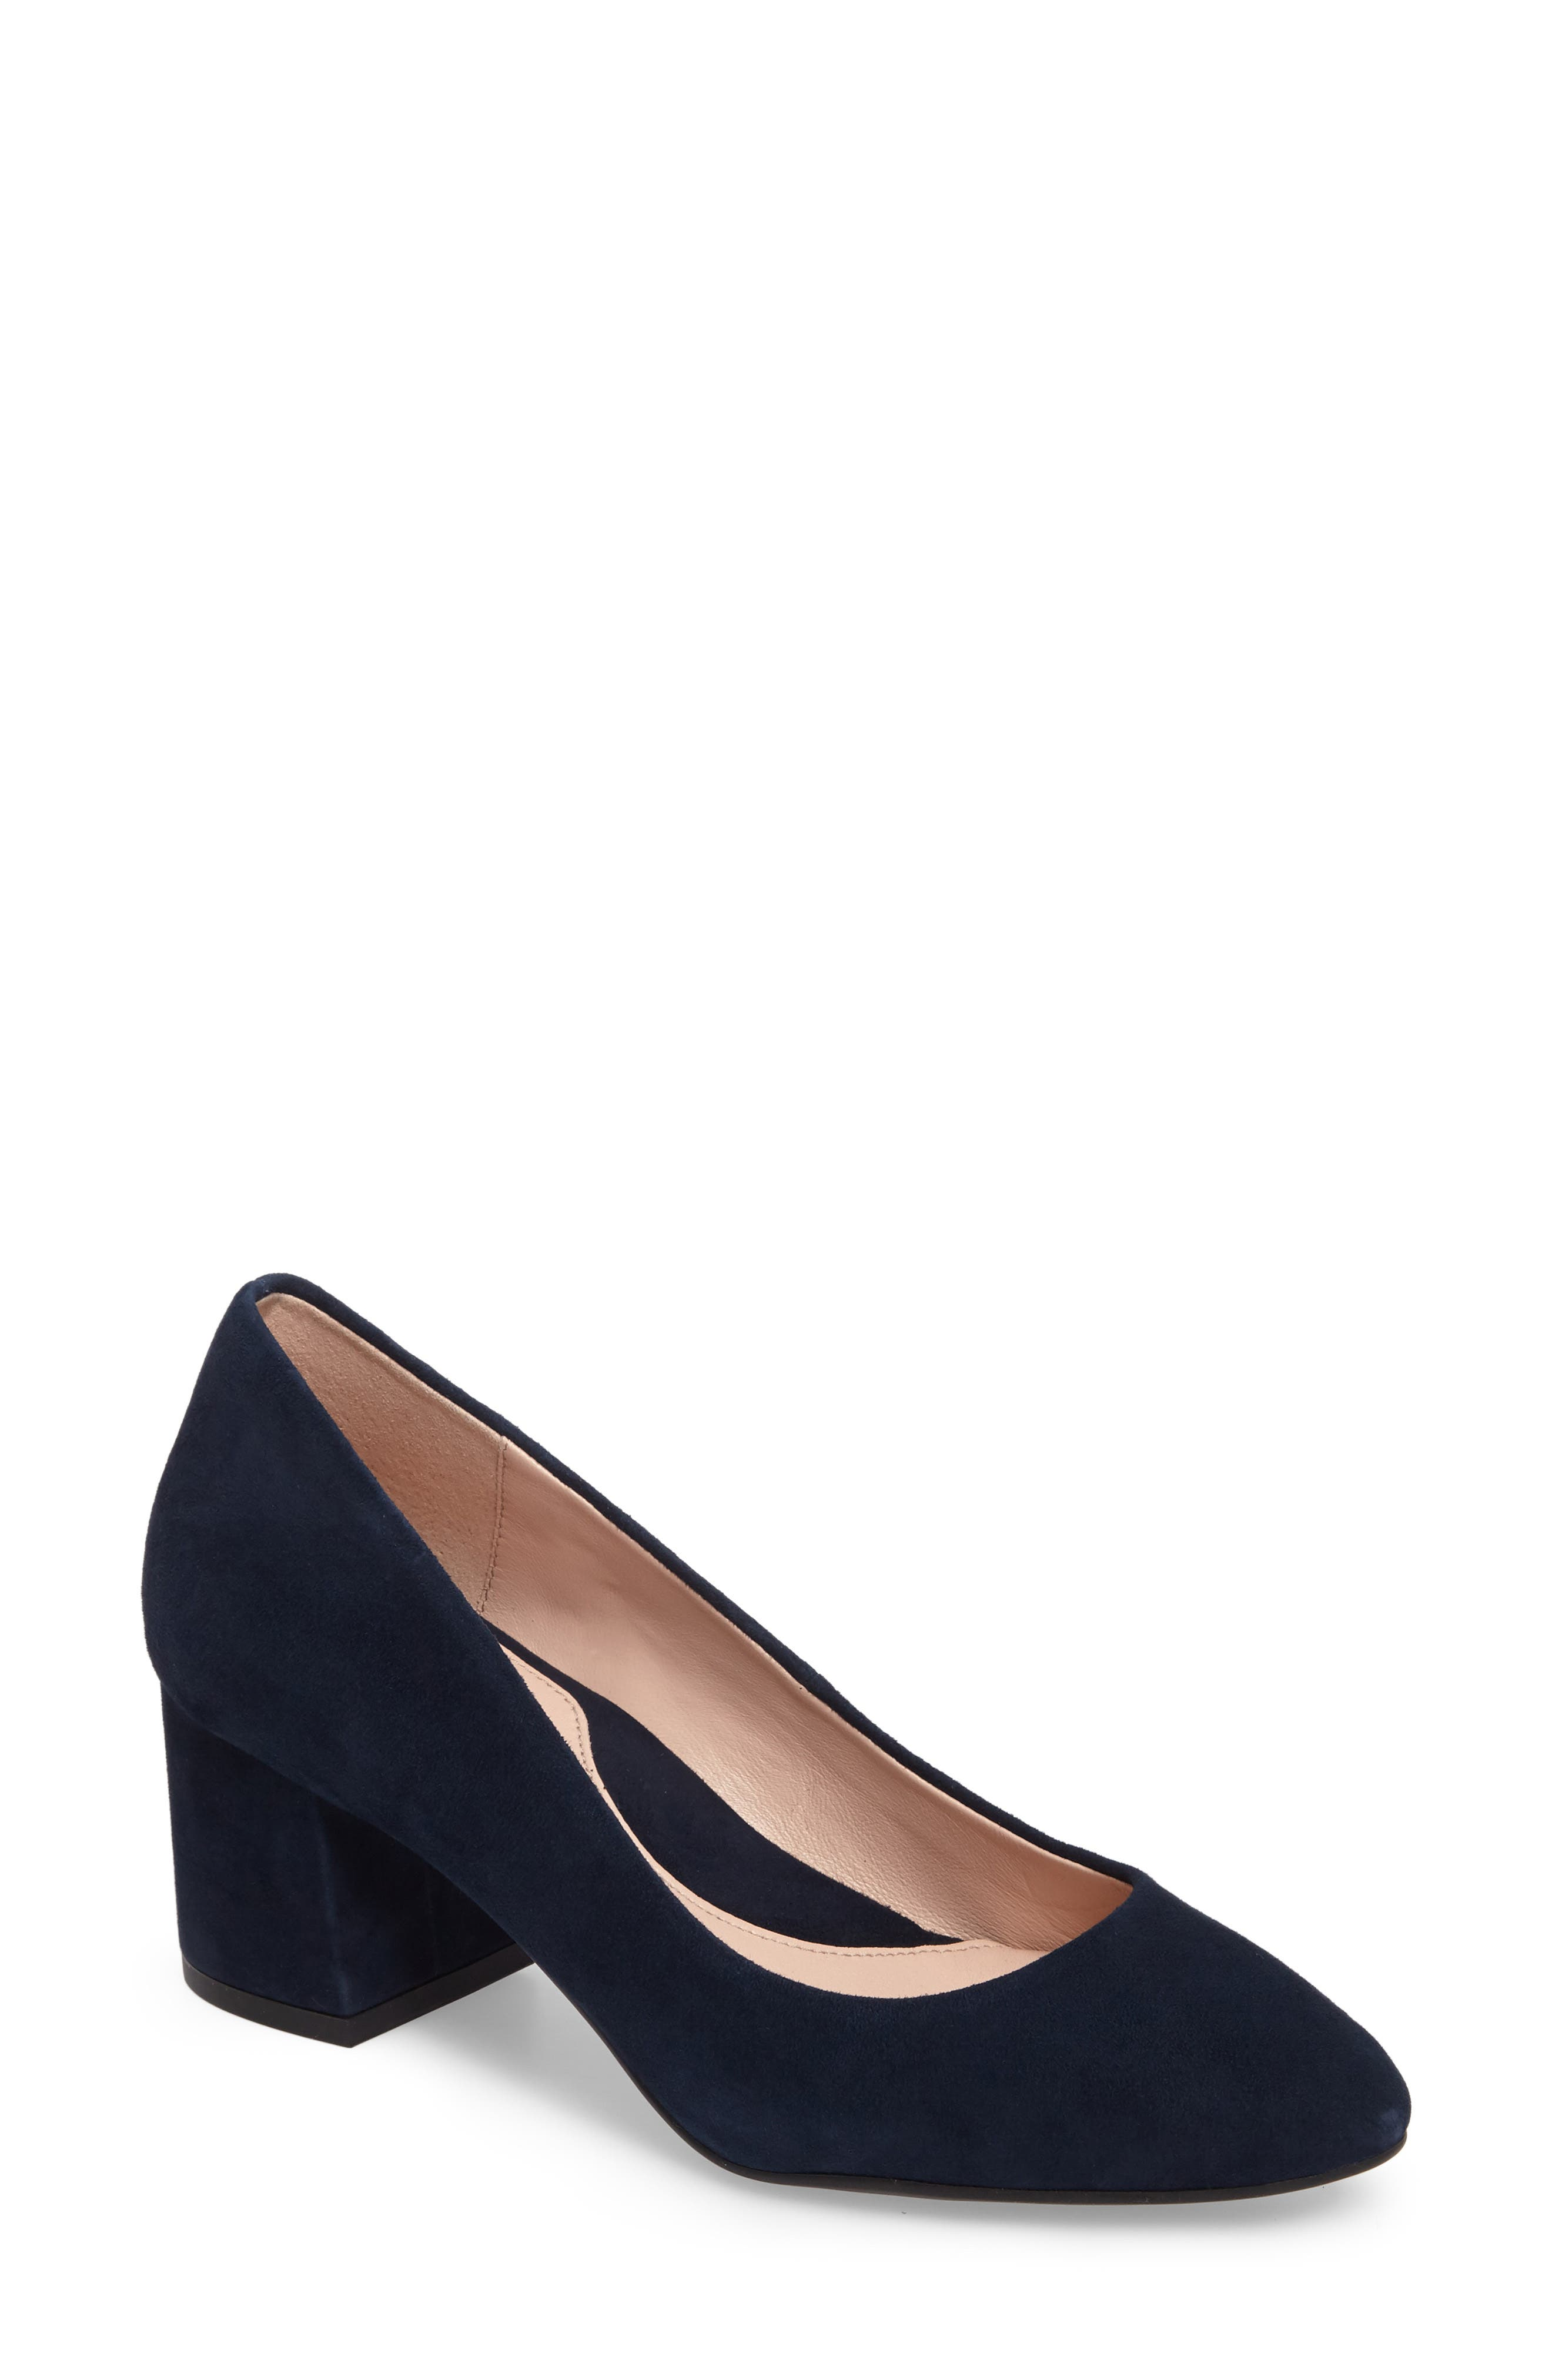 Alternate Image 1 Selected - Taryn Rose Rochelle Block Heel Pump (Women)